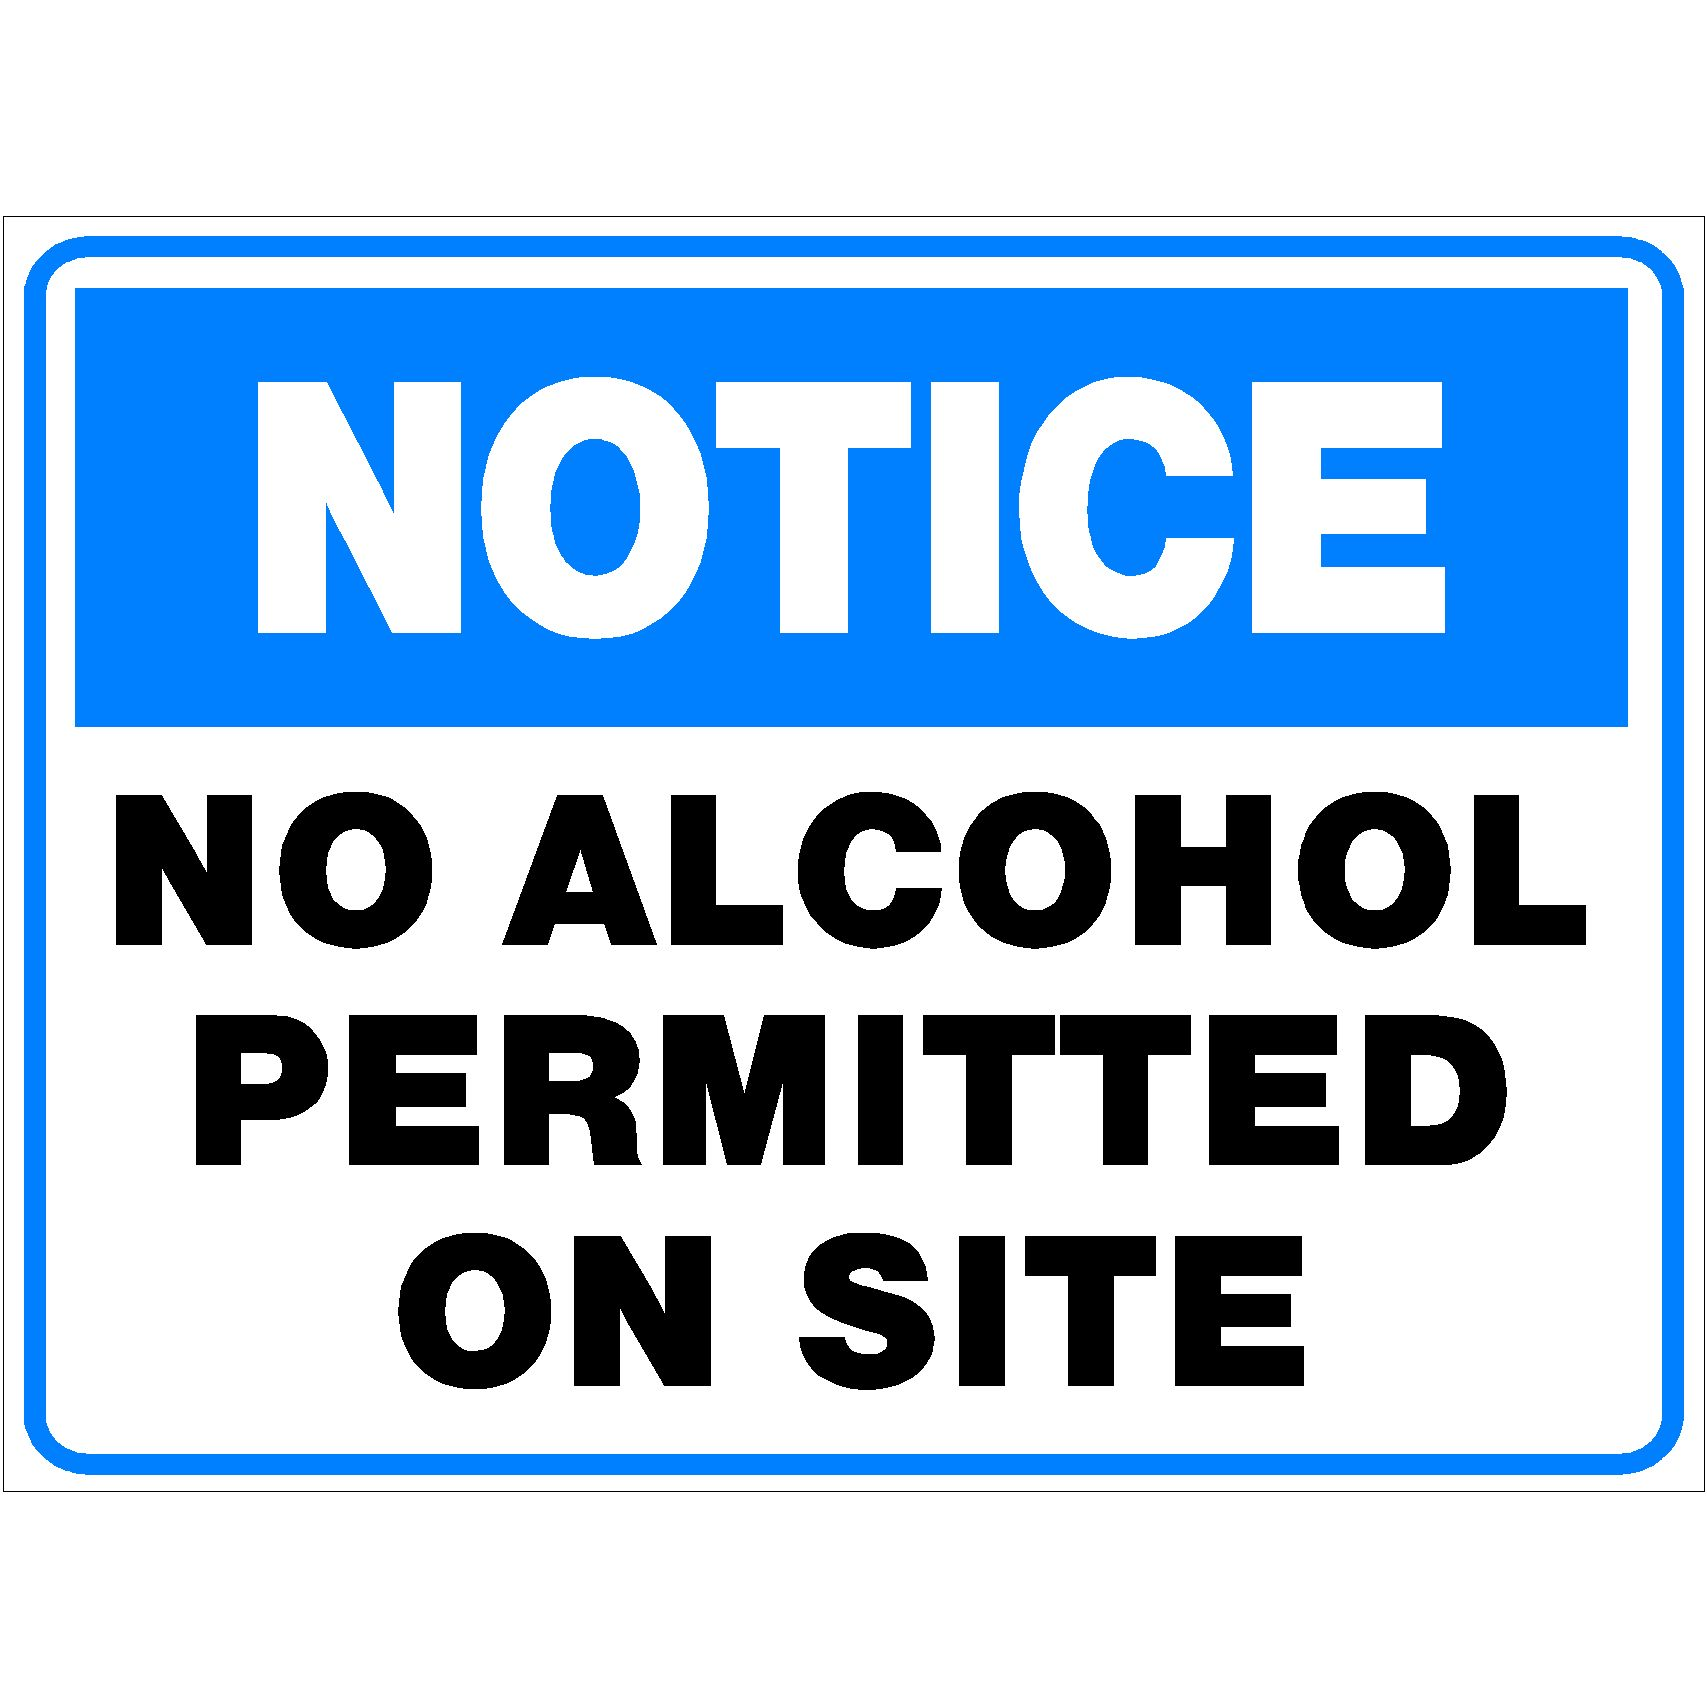 Notice No Alcohol Permitted On Site